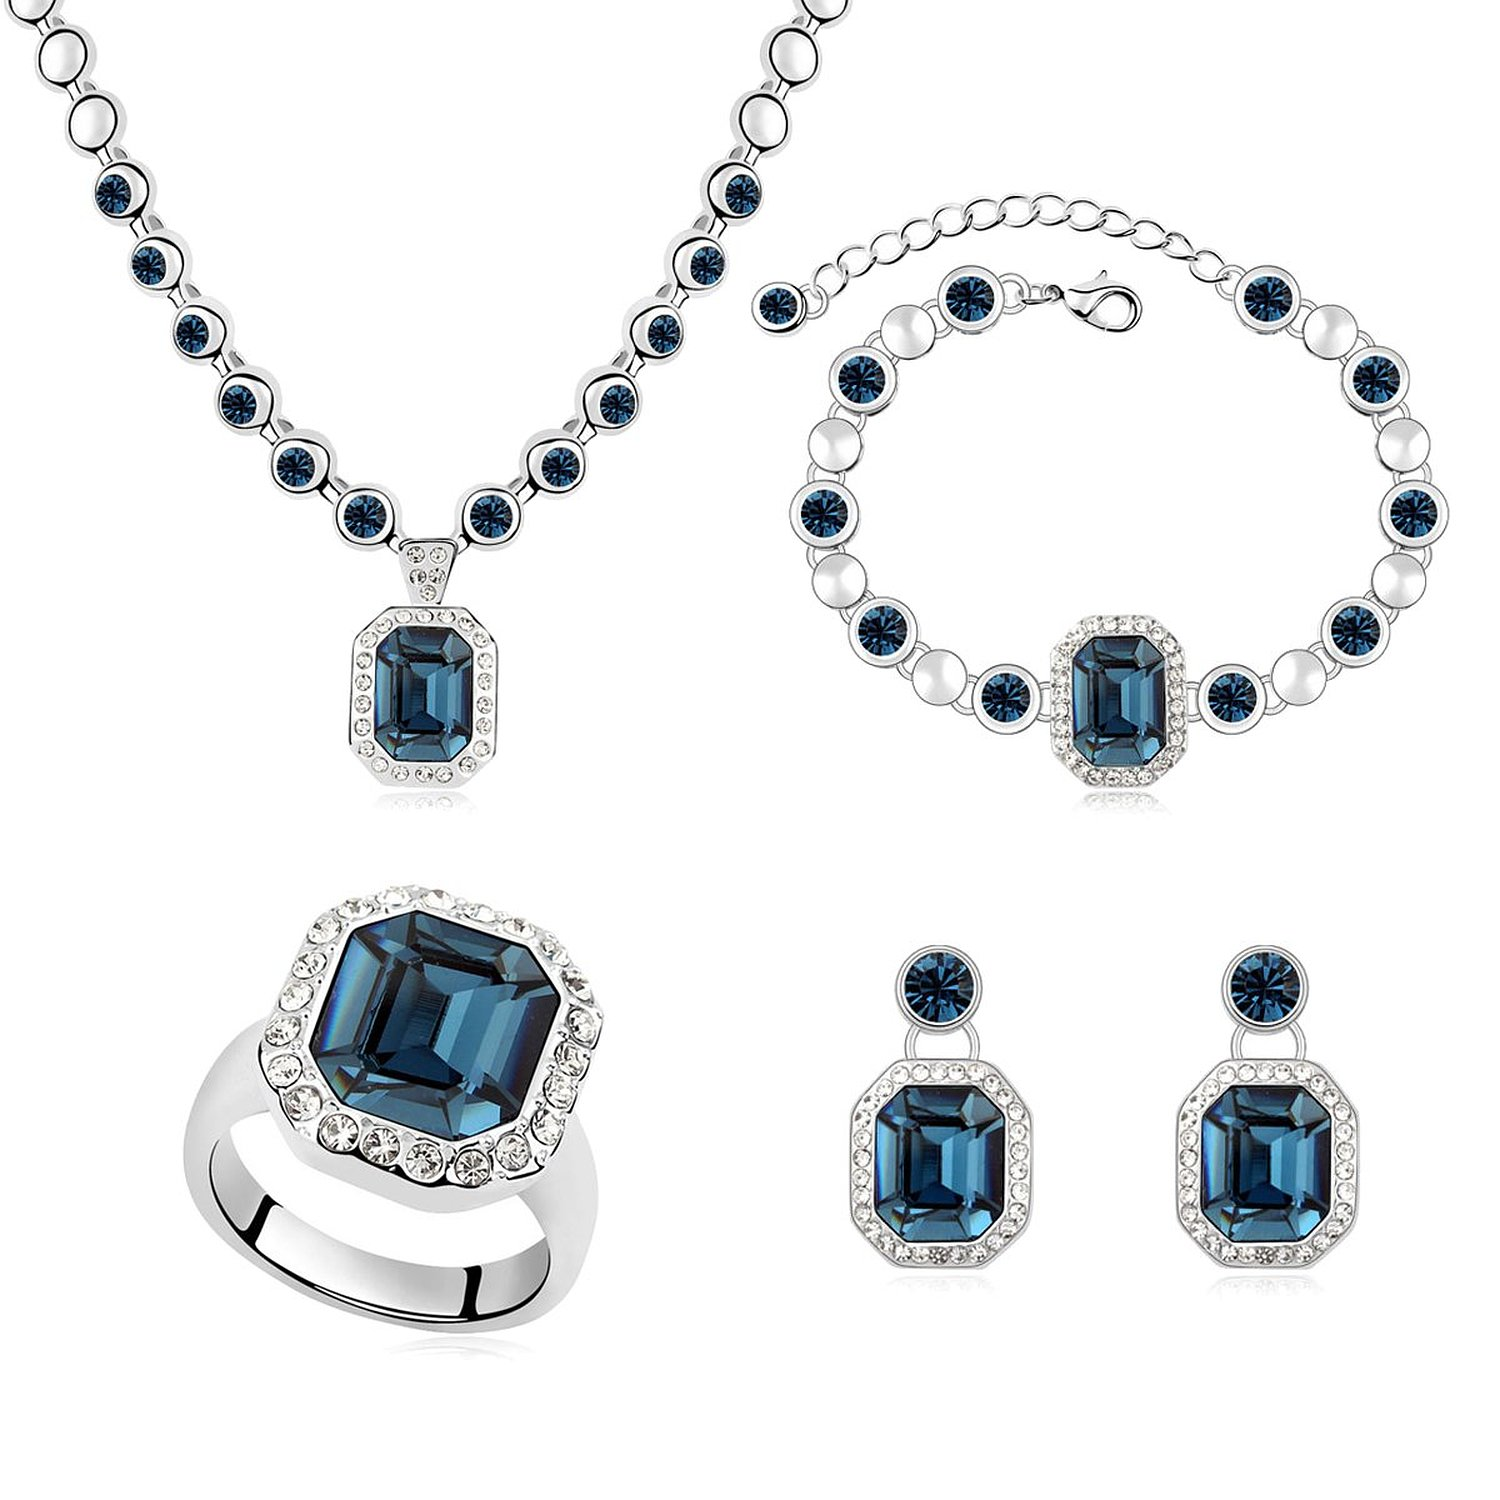 "Mondaynoon ""Rhein"" Swarovski Elements Women's Jewelry Set, Australia Imported Crystal Necklace, Bracelets, Earrings and Ring Set (Dark Blue)"